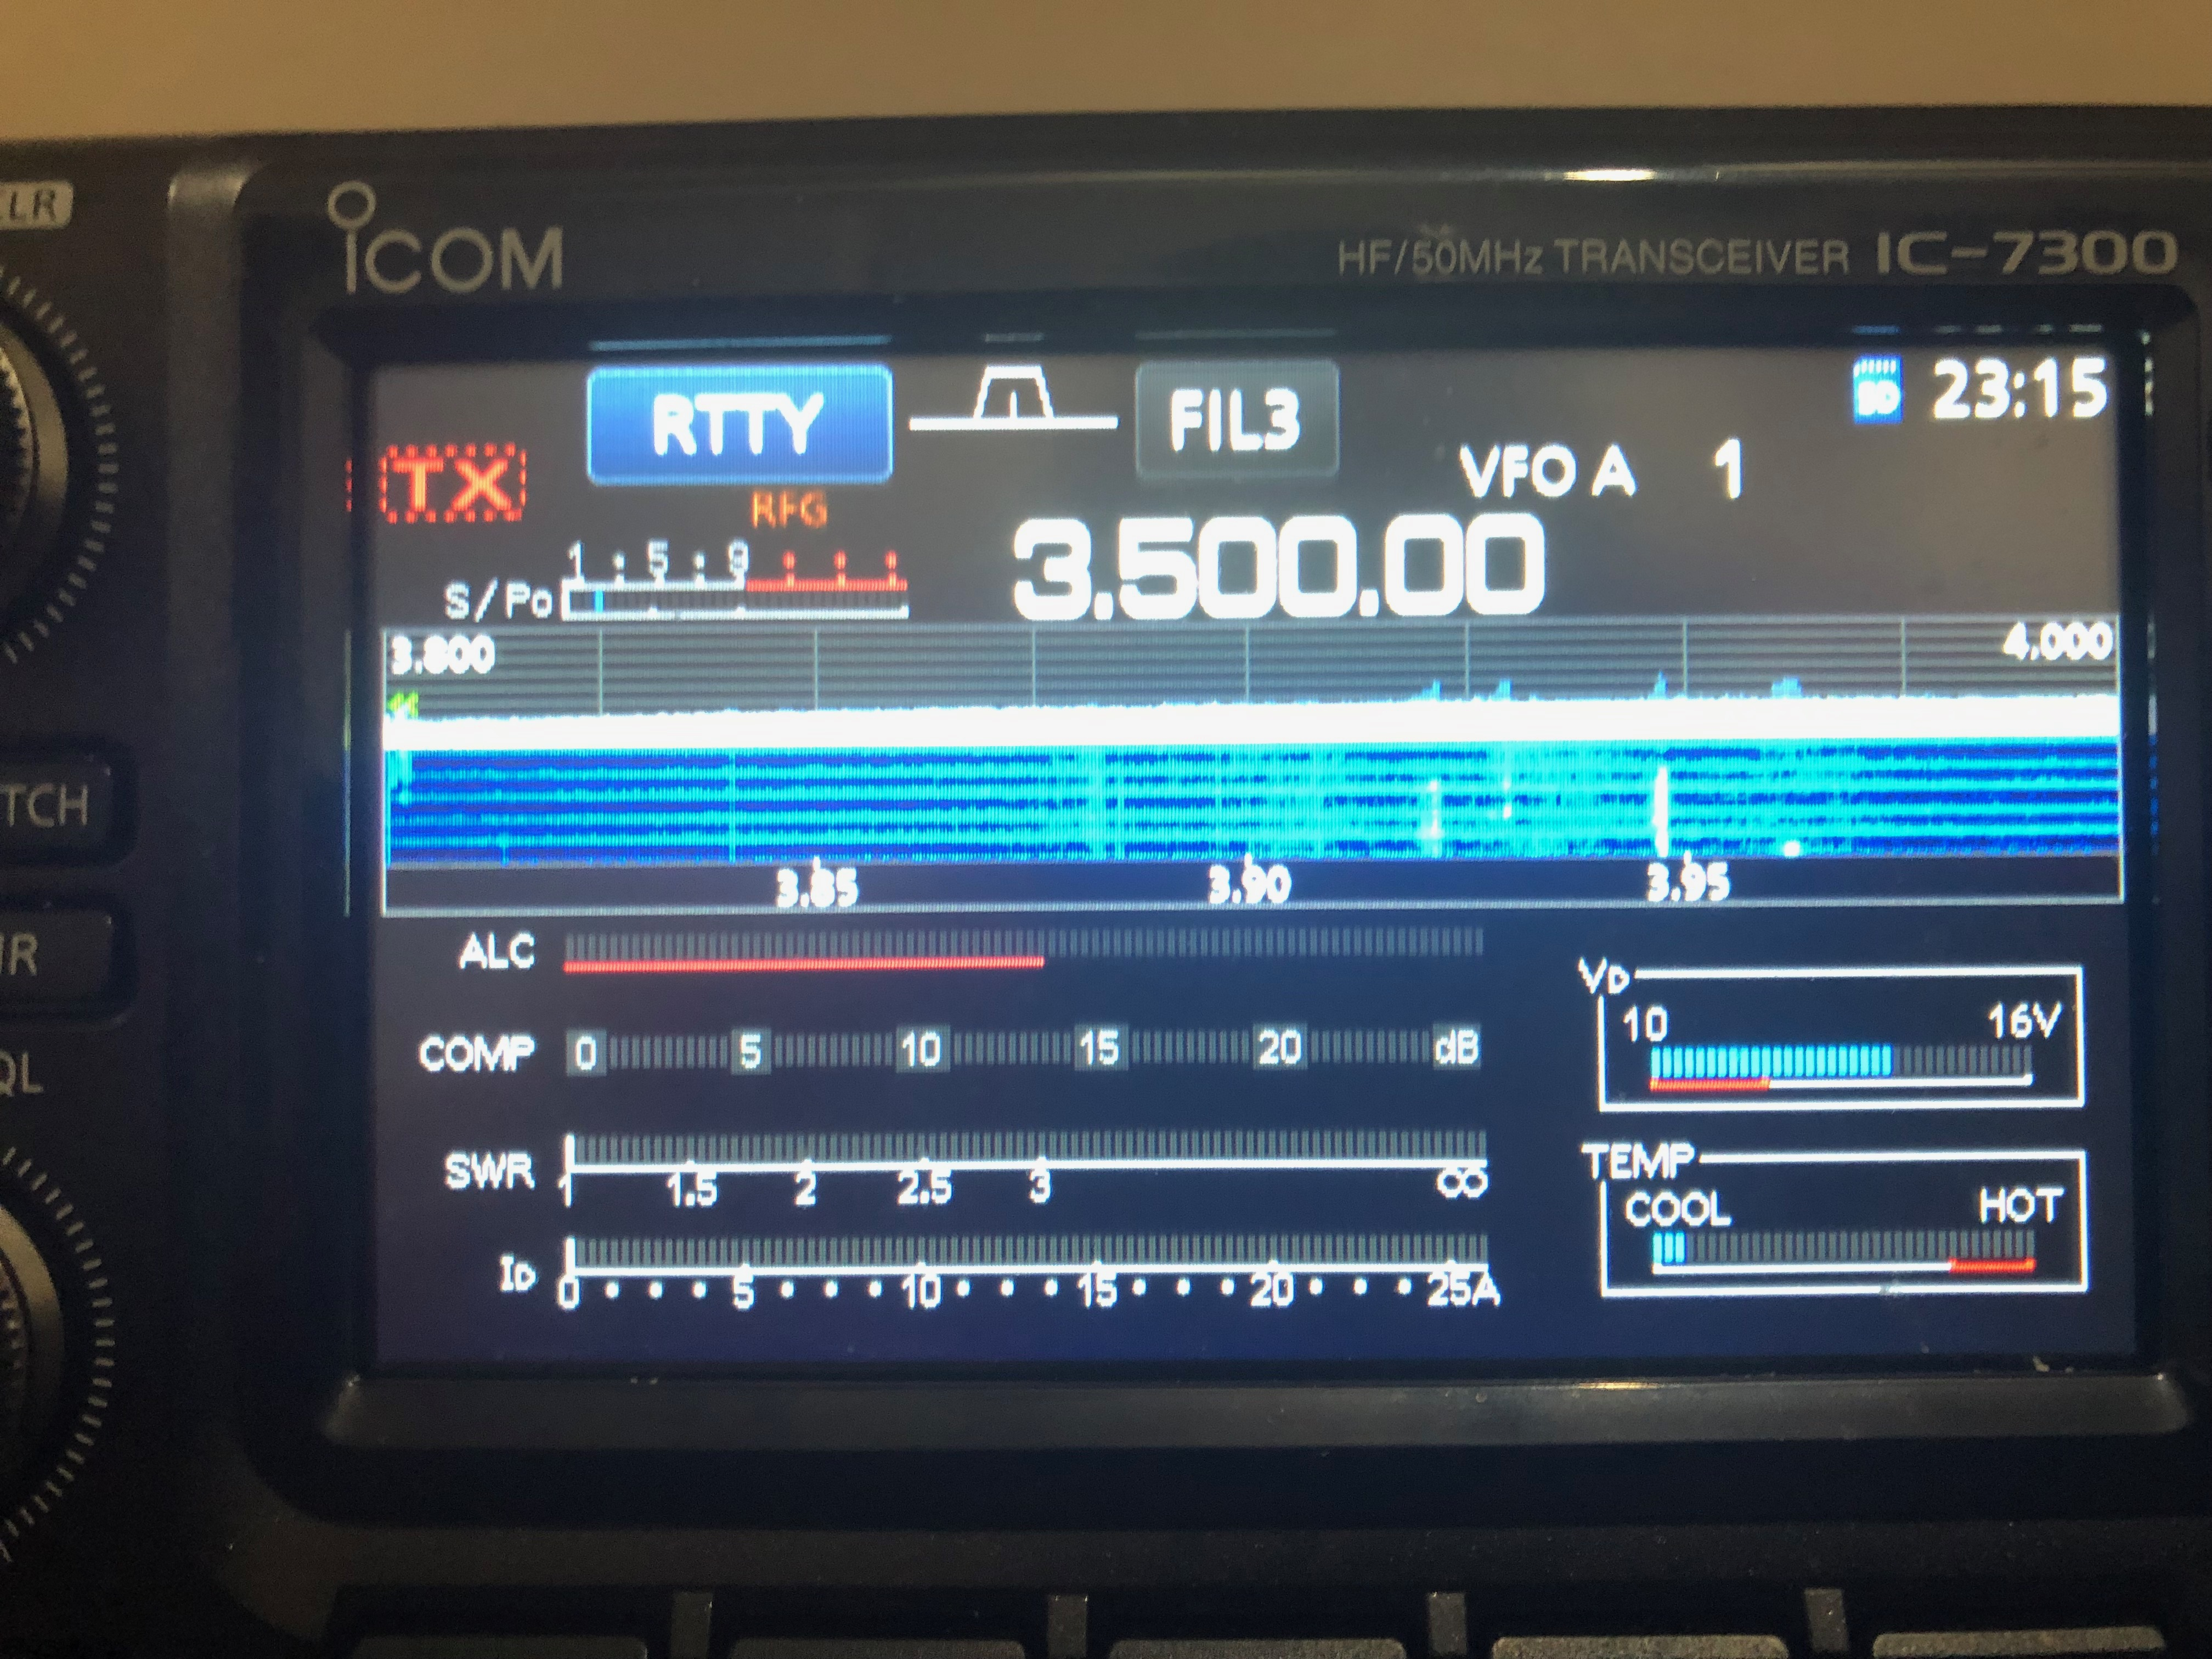 7300 display showing RTTY mode